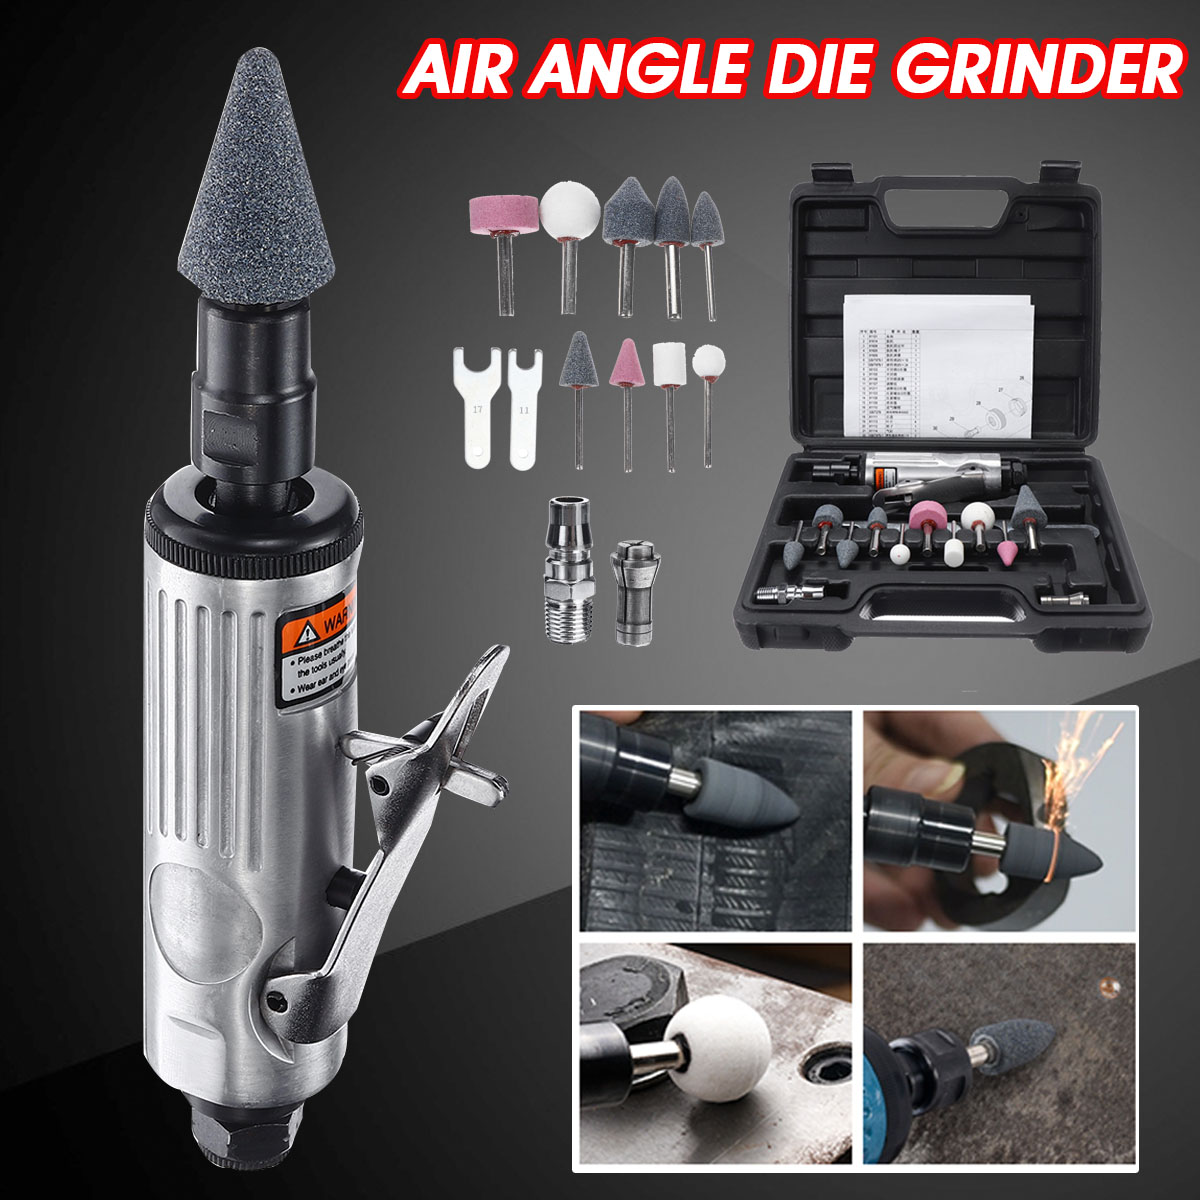 Becornce 1/4 Air Angle Die Grinder Pneumatic Grinding Machine Mini Poratble Tools Cut Off Polisher Mill Engraving Tools Set